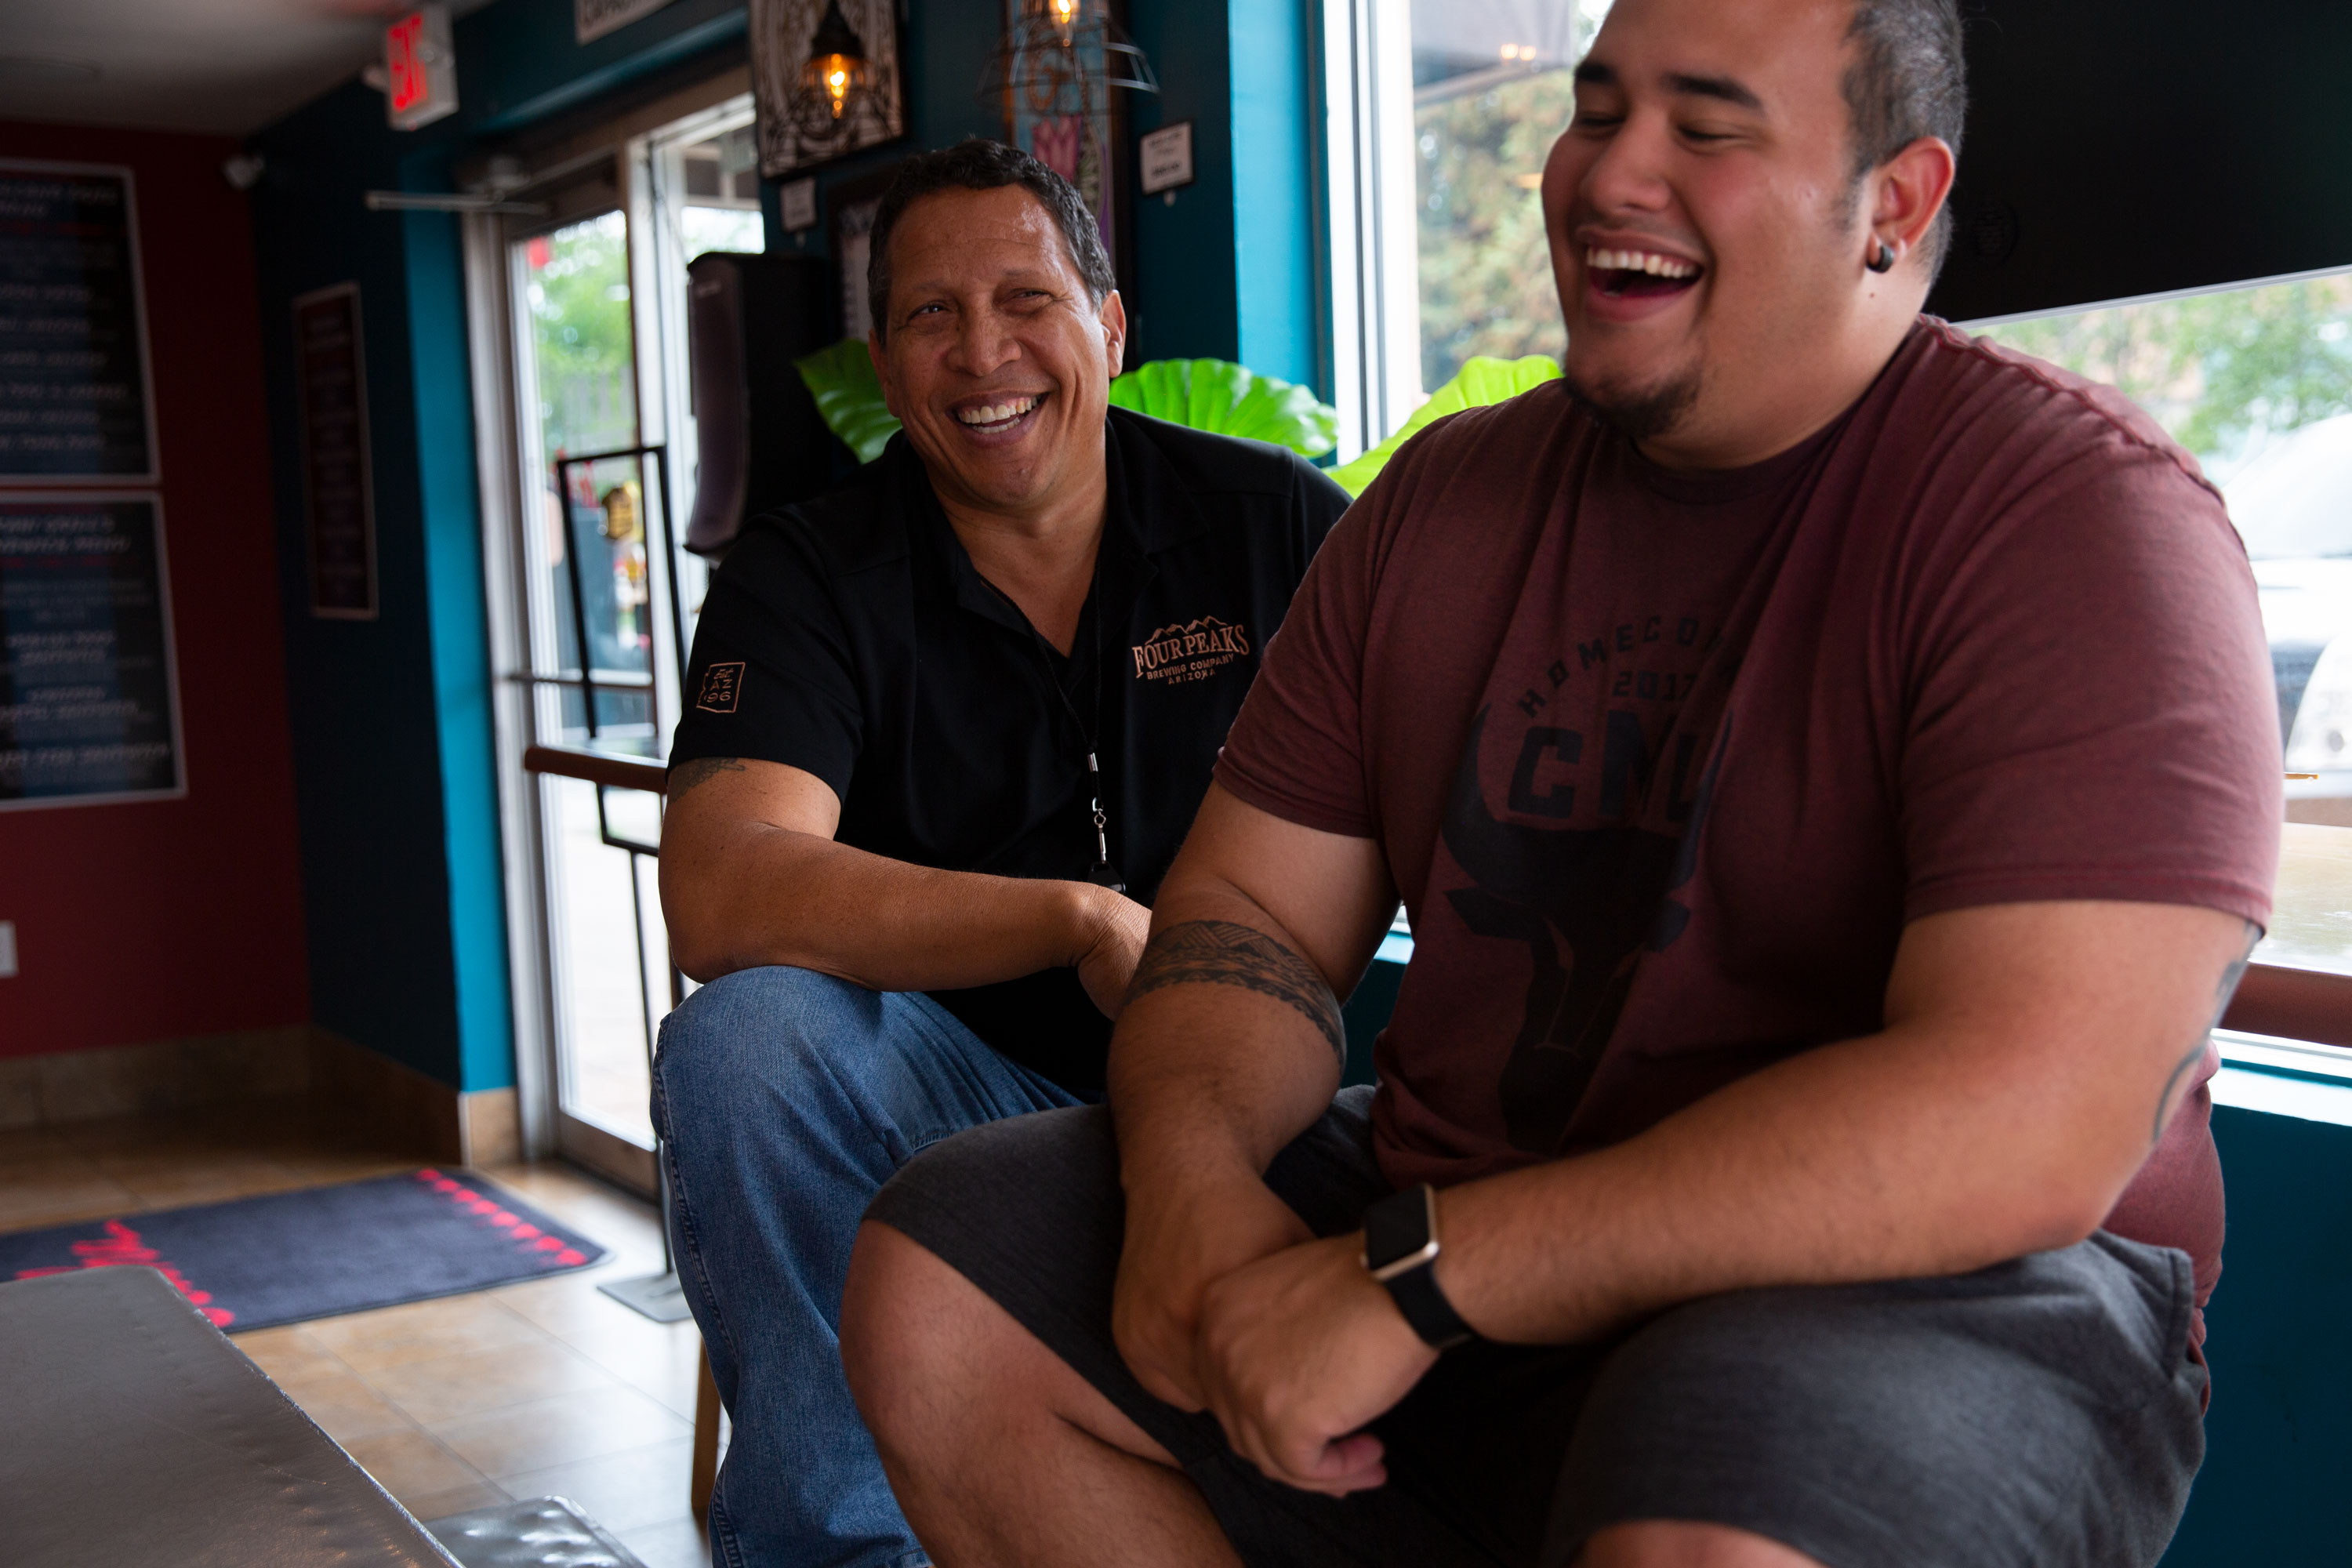 Grand Junction City Councilman Phil Pe'a (left) and Colorado Mesa University student Beau Flores laugh at Ekahi Grill on Thursday, June 20, 2019. They are just two of many native Hawaiians who now call the Western Slope home.